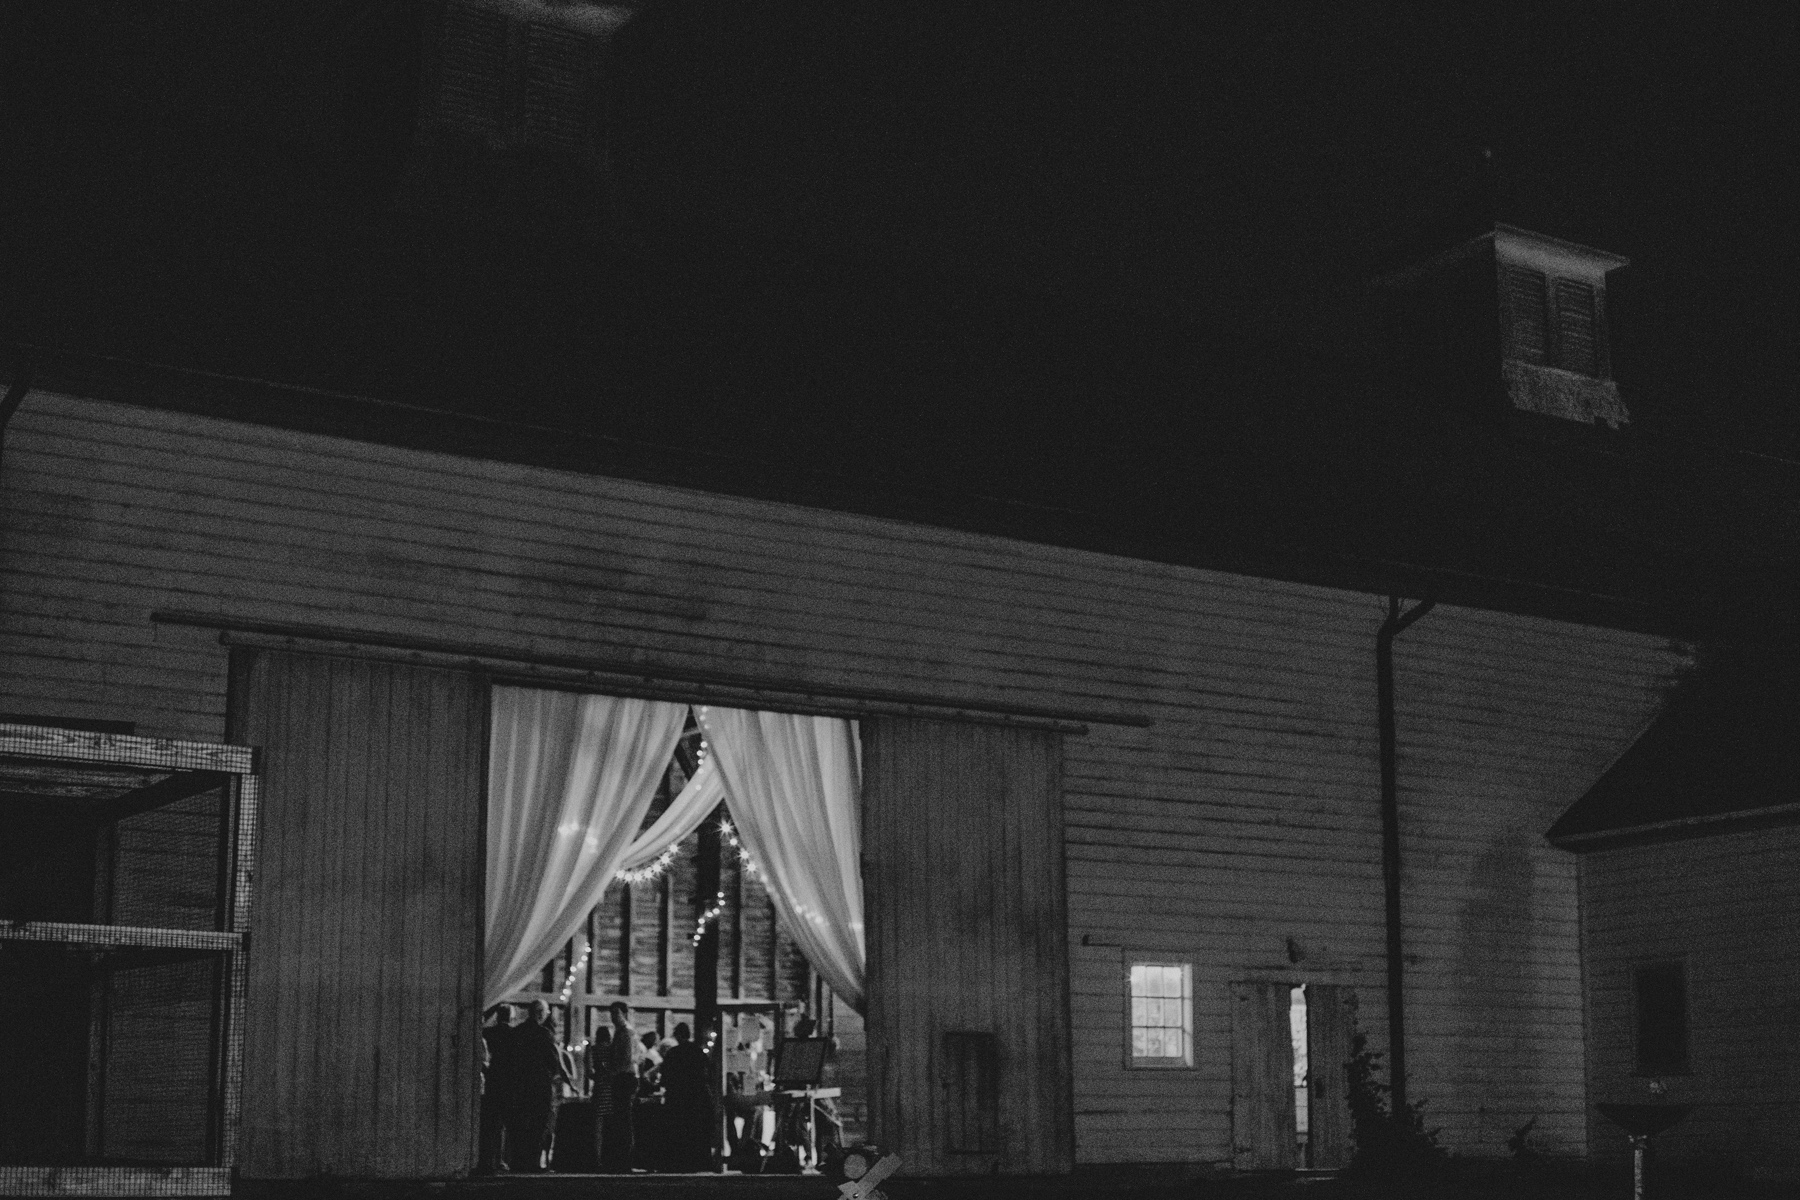 shaker_heritage_barn_wedding_0059.jpg